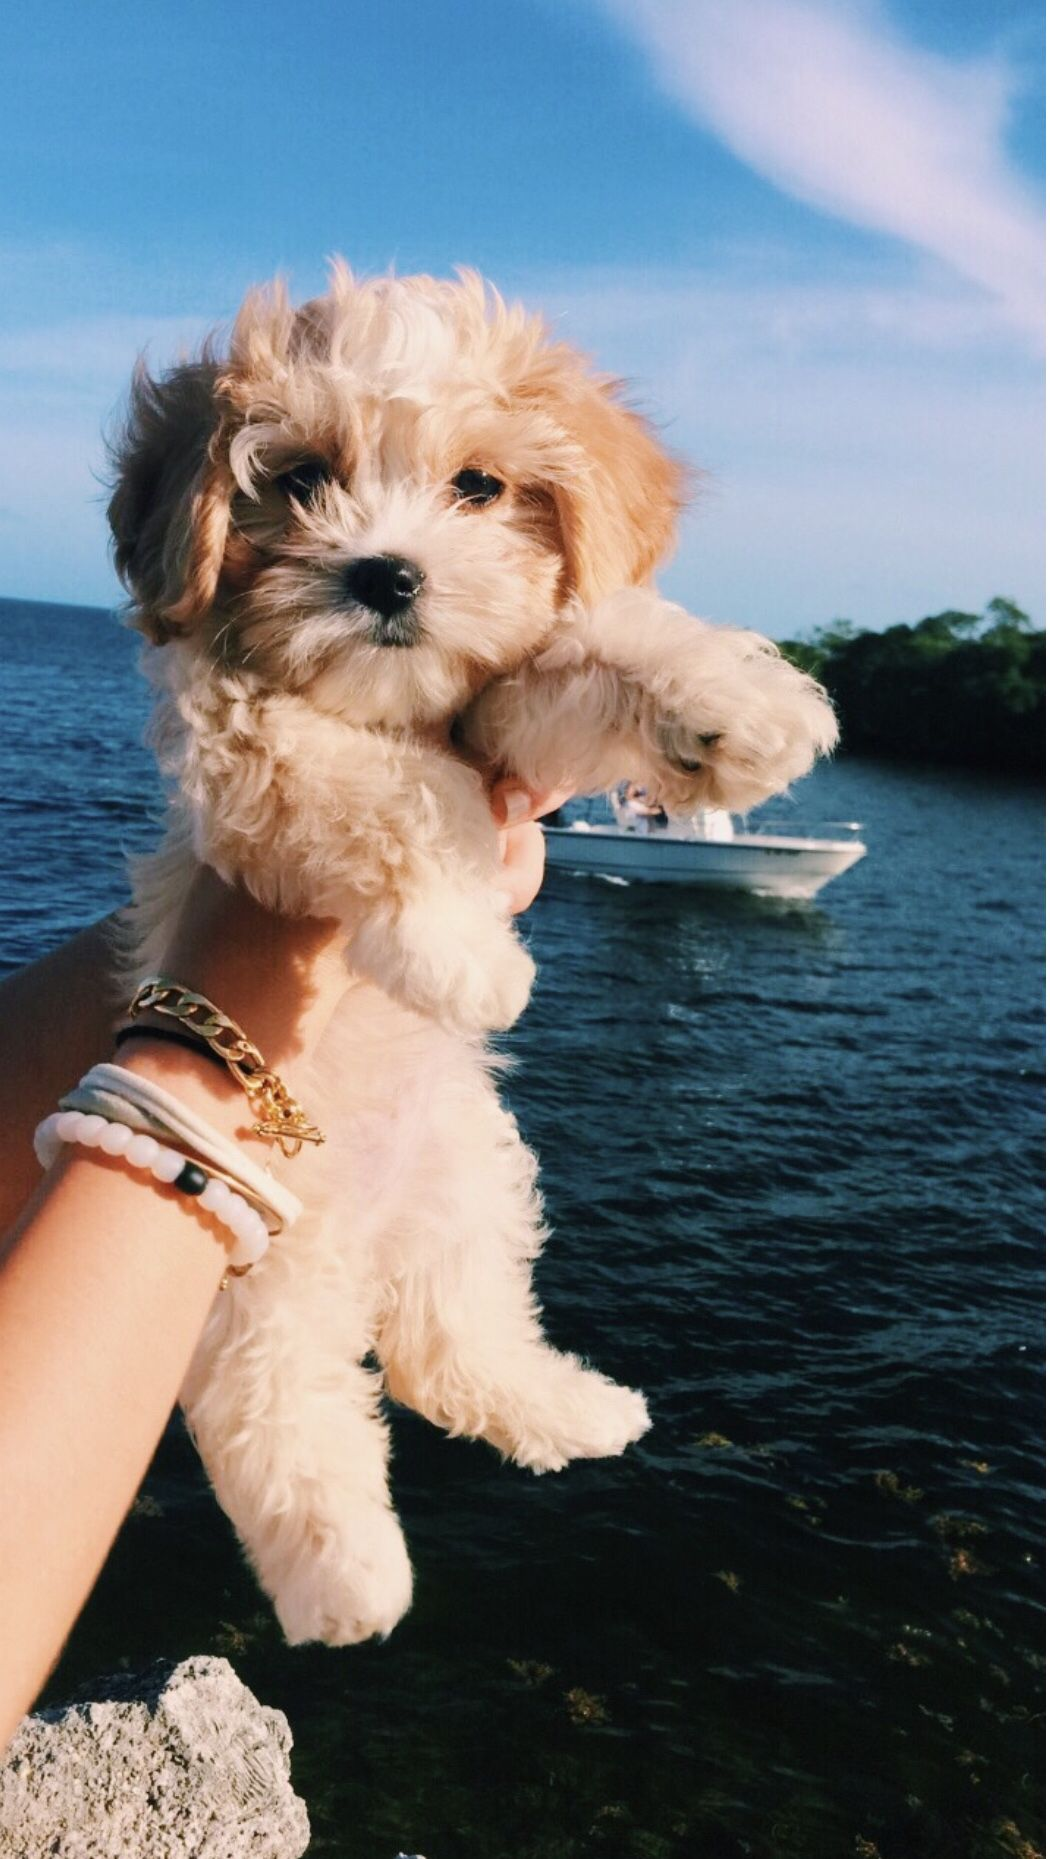 Puppy Having A Fun Time While Hanging On The Outside Of A Boat